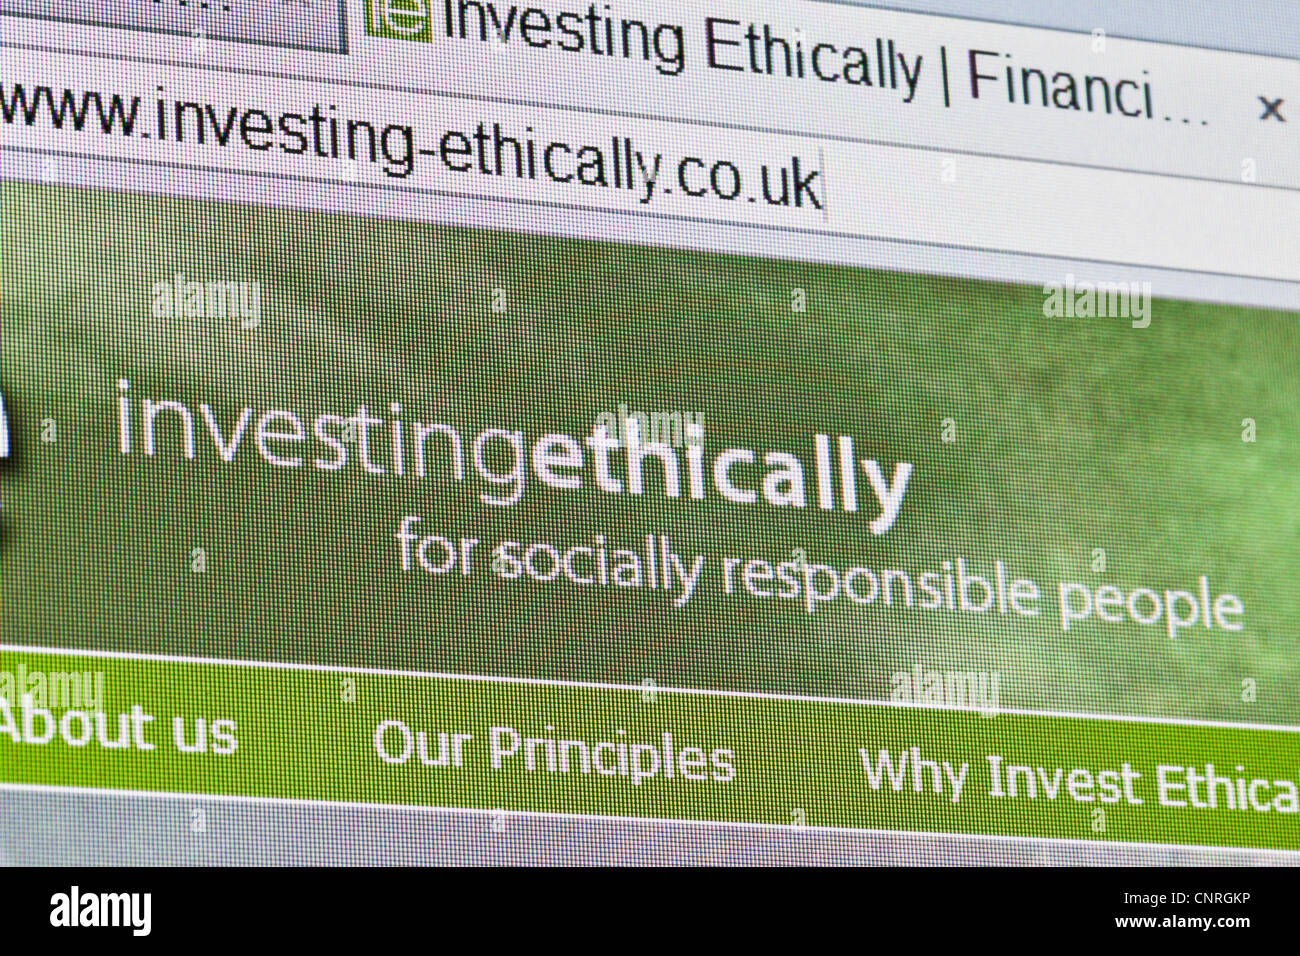 Investing ethically website home page - Stock Image